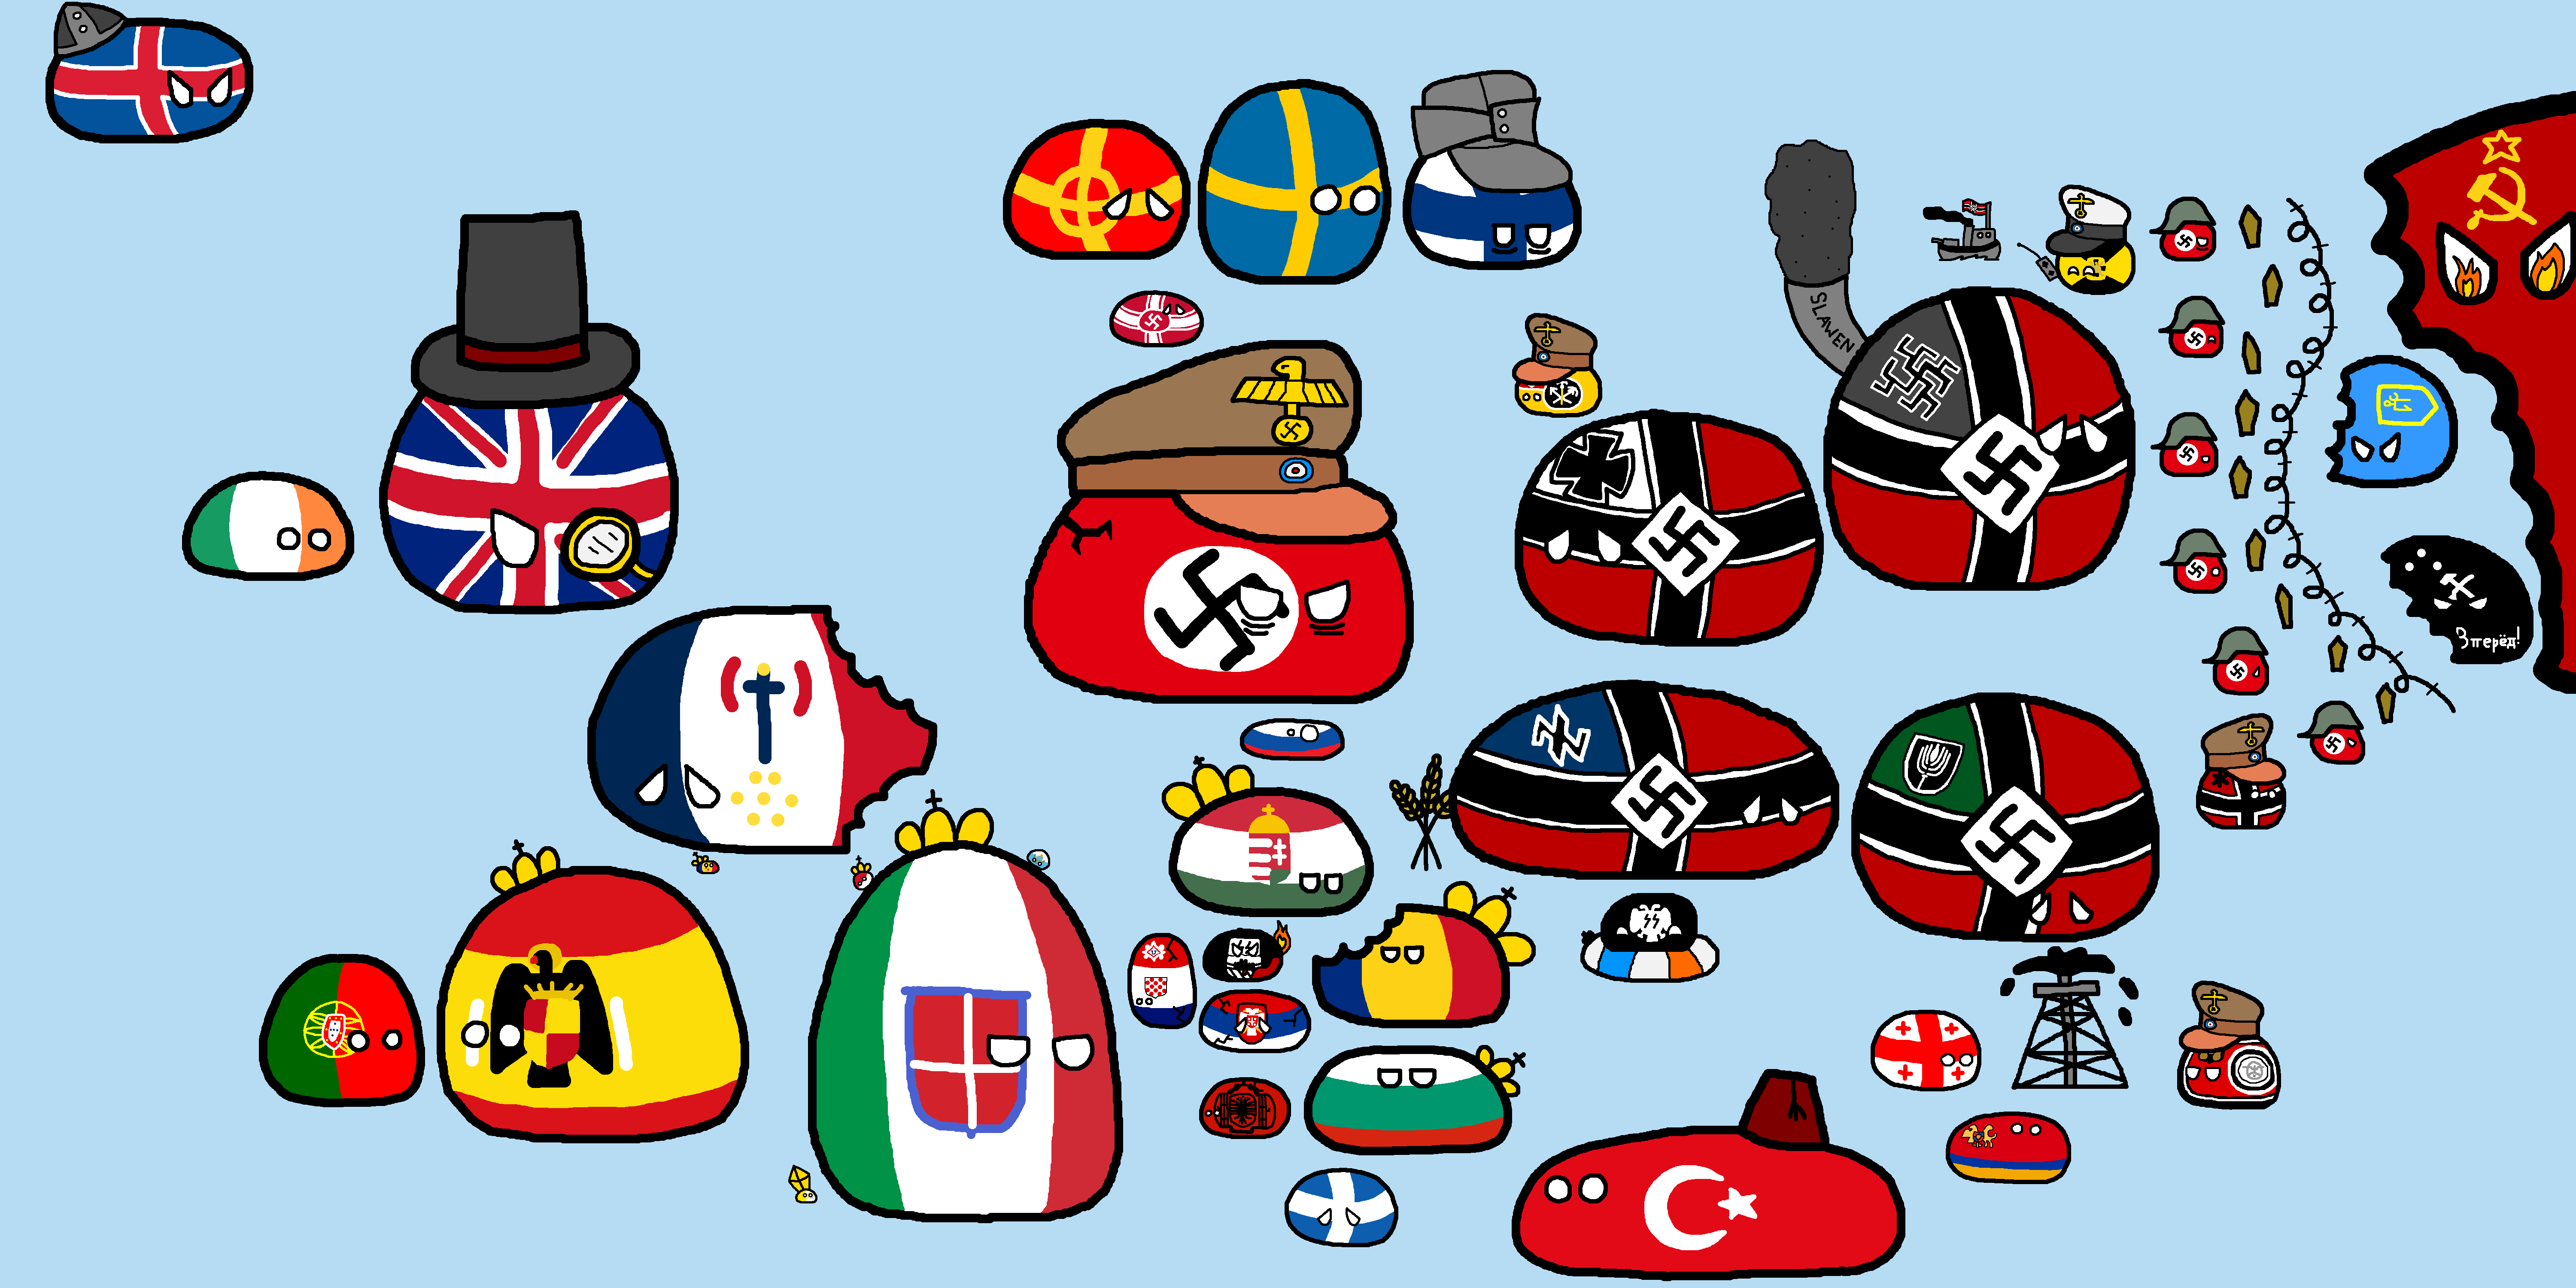 twr_polandball_2.png